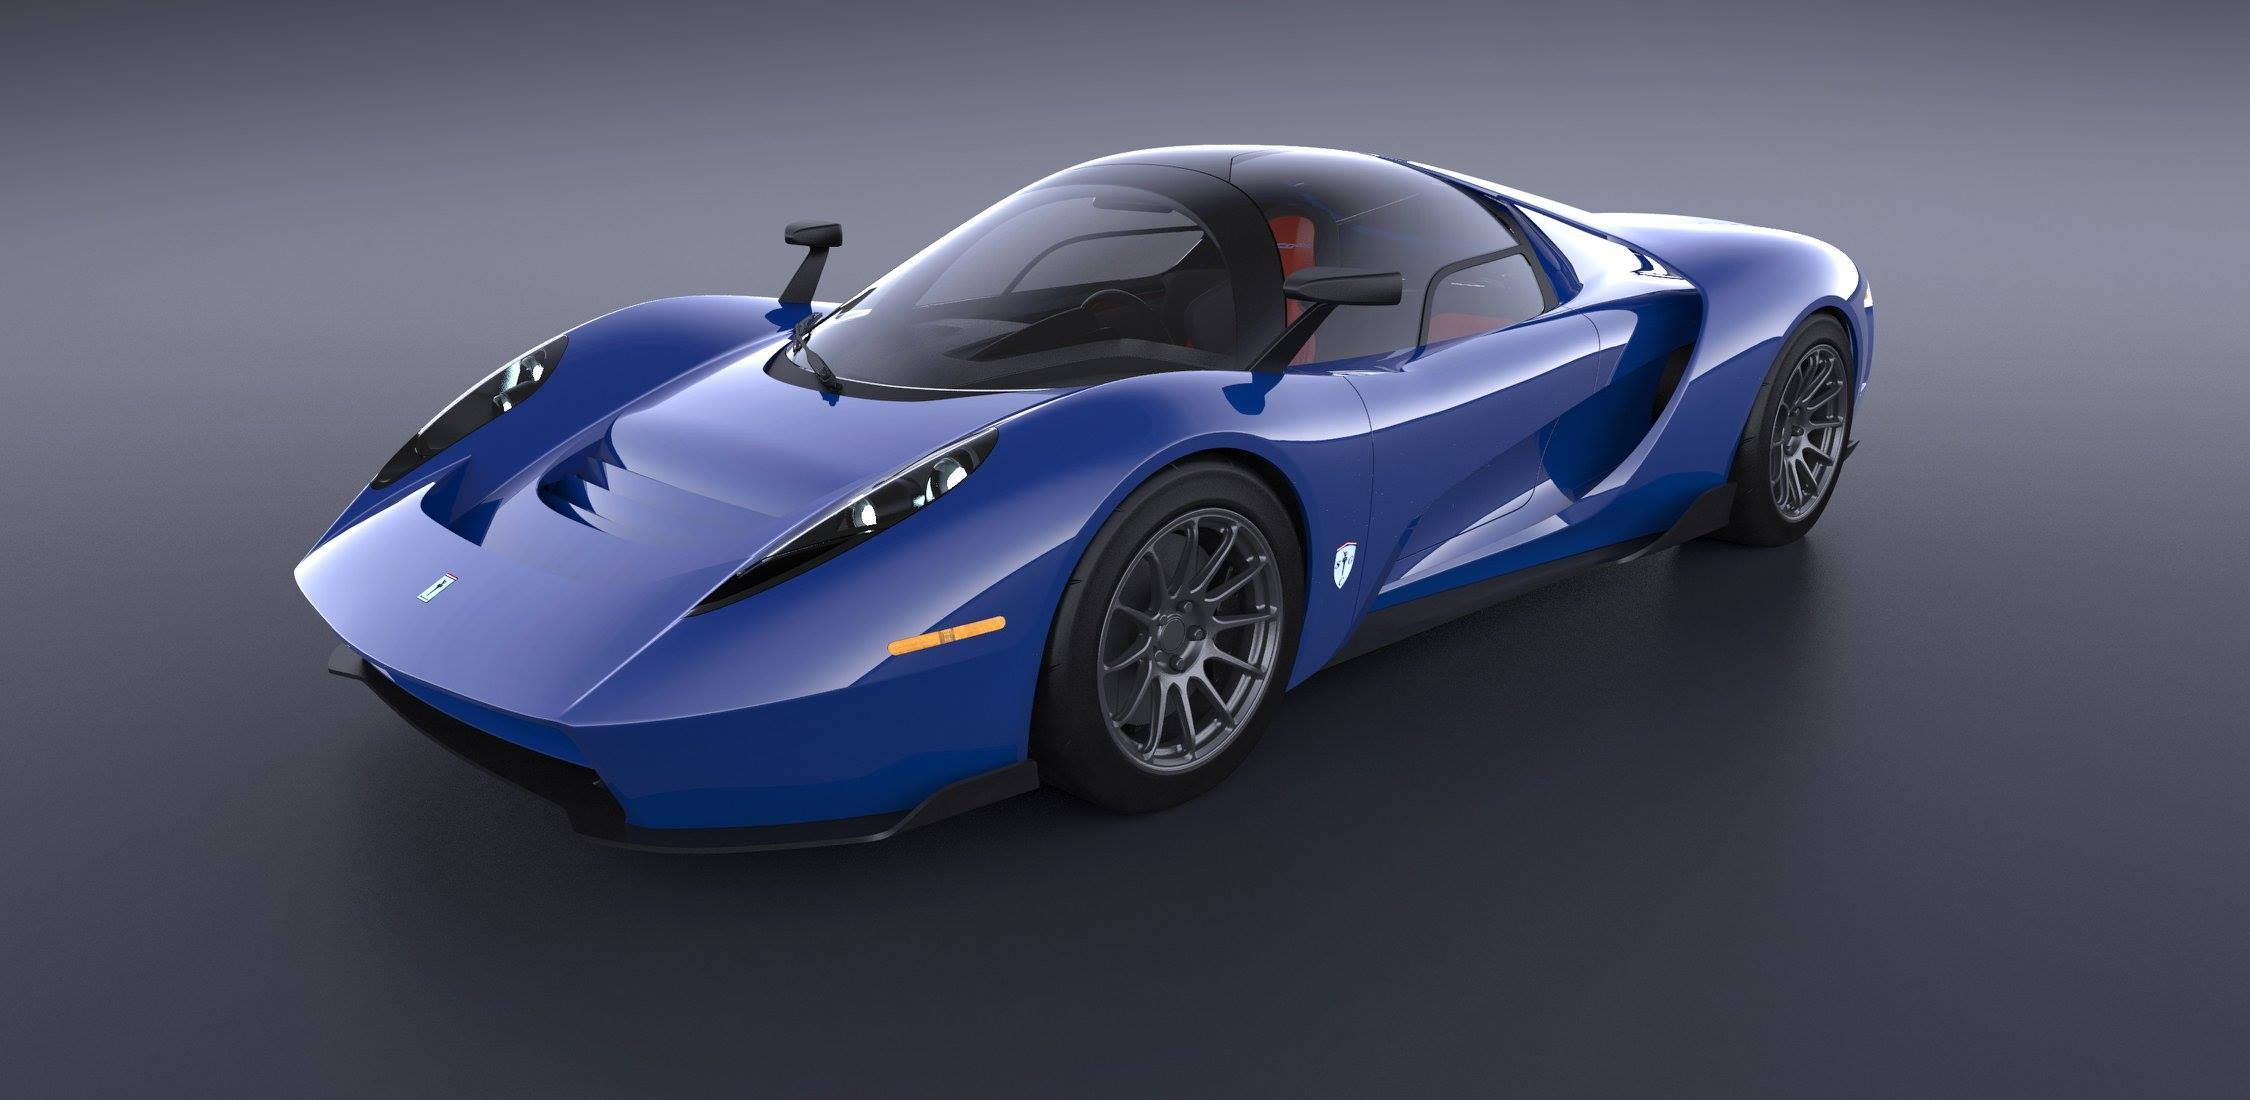 Official Scuderia Cameron Glickenhaus Scg 004s With 650hp